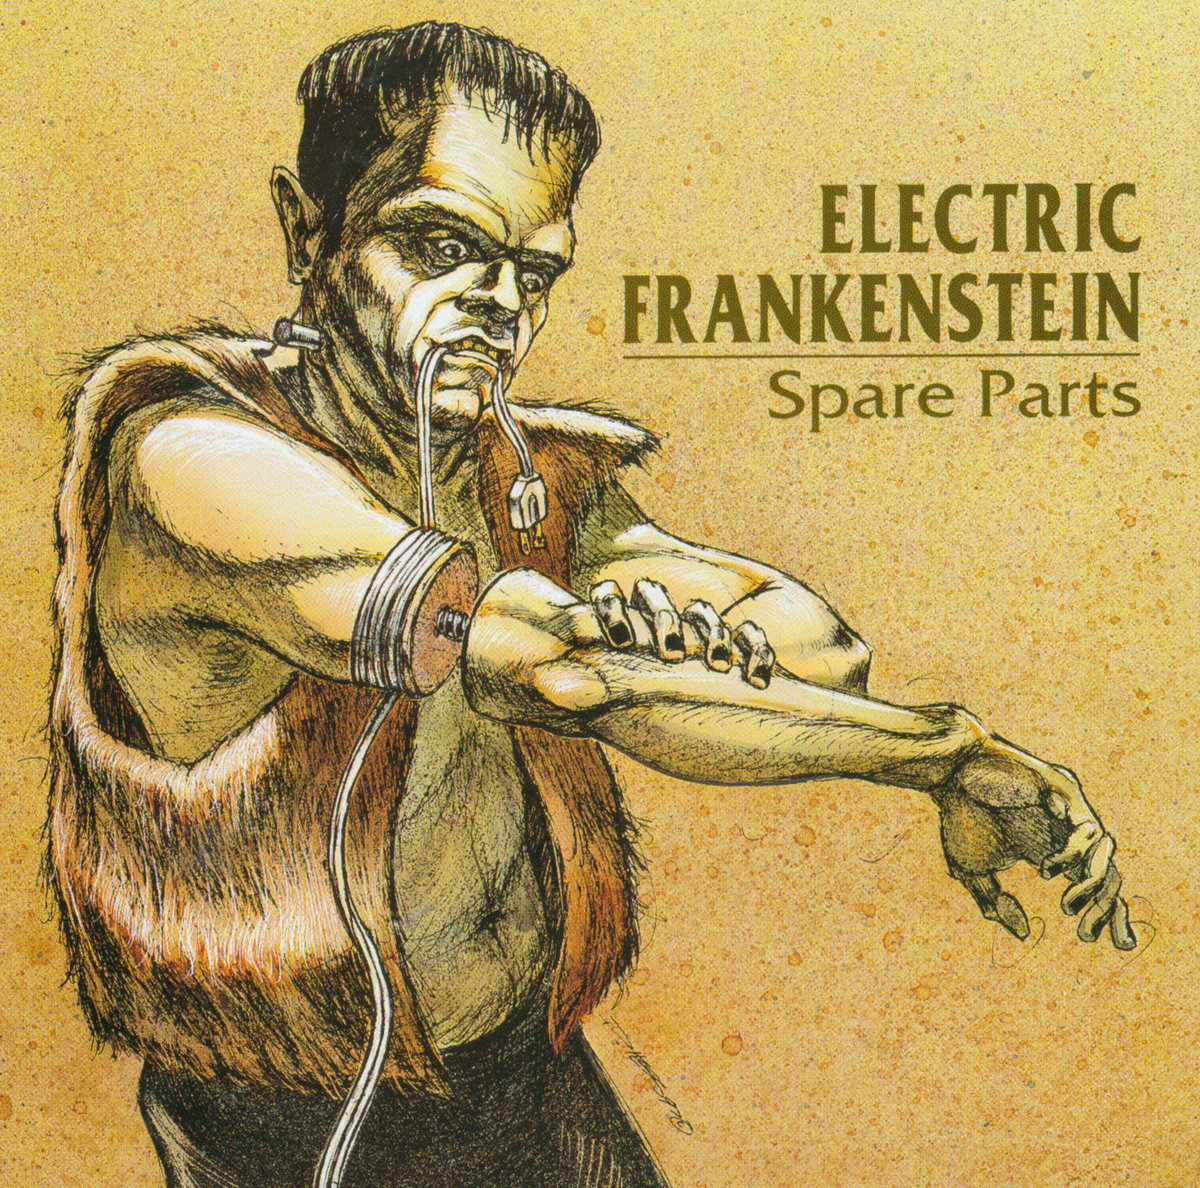 SPARE PARTS - 4. Spare Parts LP/CD (USA: Get Hip 1998)Full-length 10 song USA version,Scott Wilkins on vocalsmastering differs from EURO version -